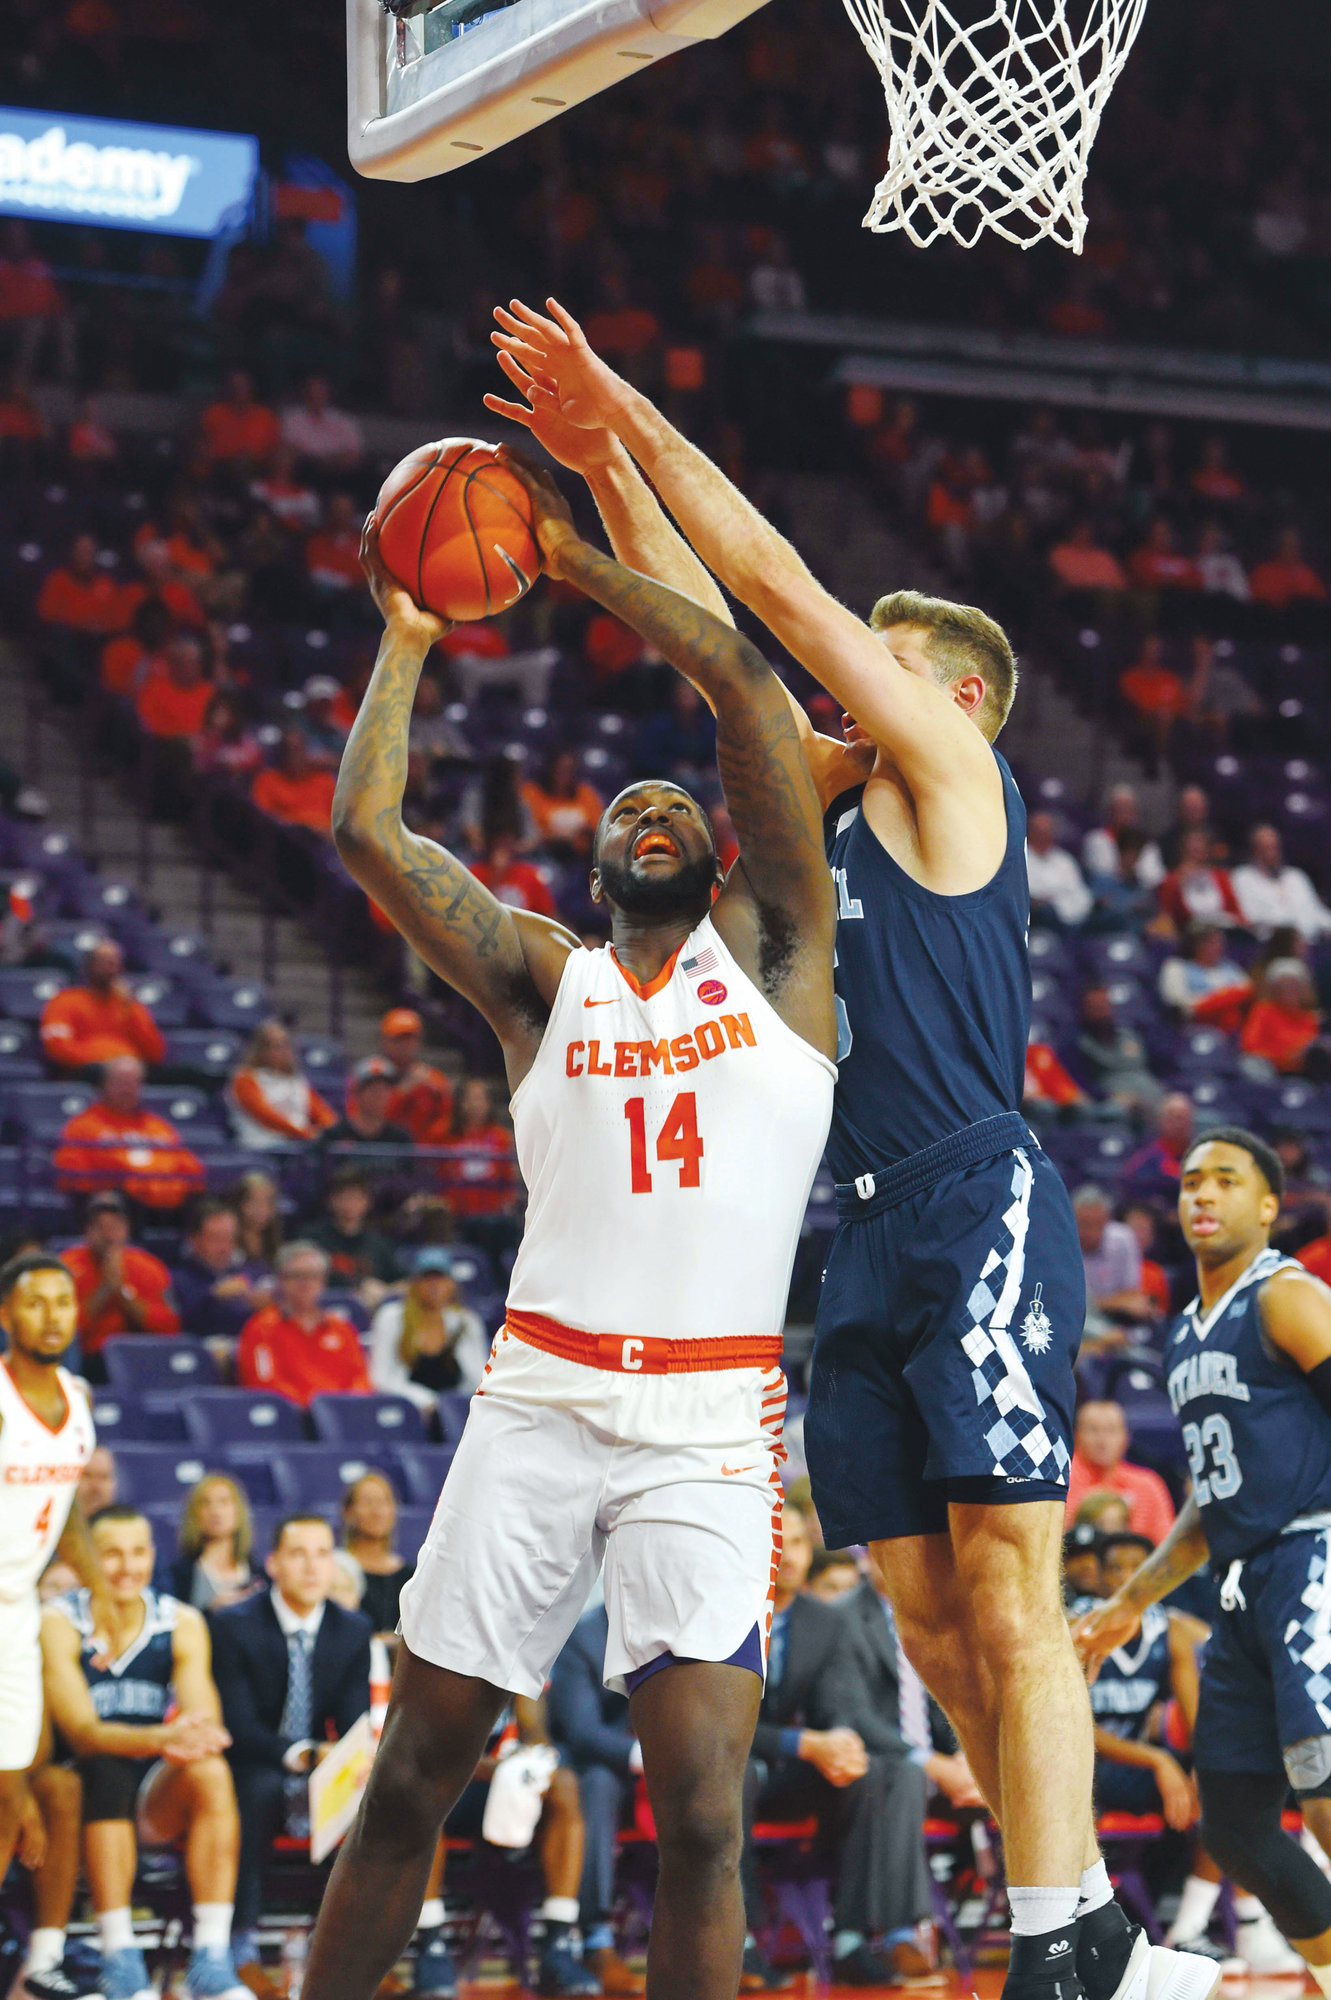 Clemson's Elijah Thomas drives to the basket while being defended by The Citadel's Zane Najdawl during the Tigers' 100-80 victory in the season-opening game for both teams on Tuesday in Clemson.